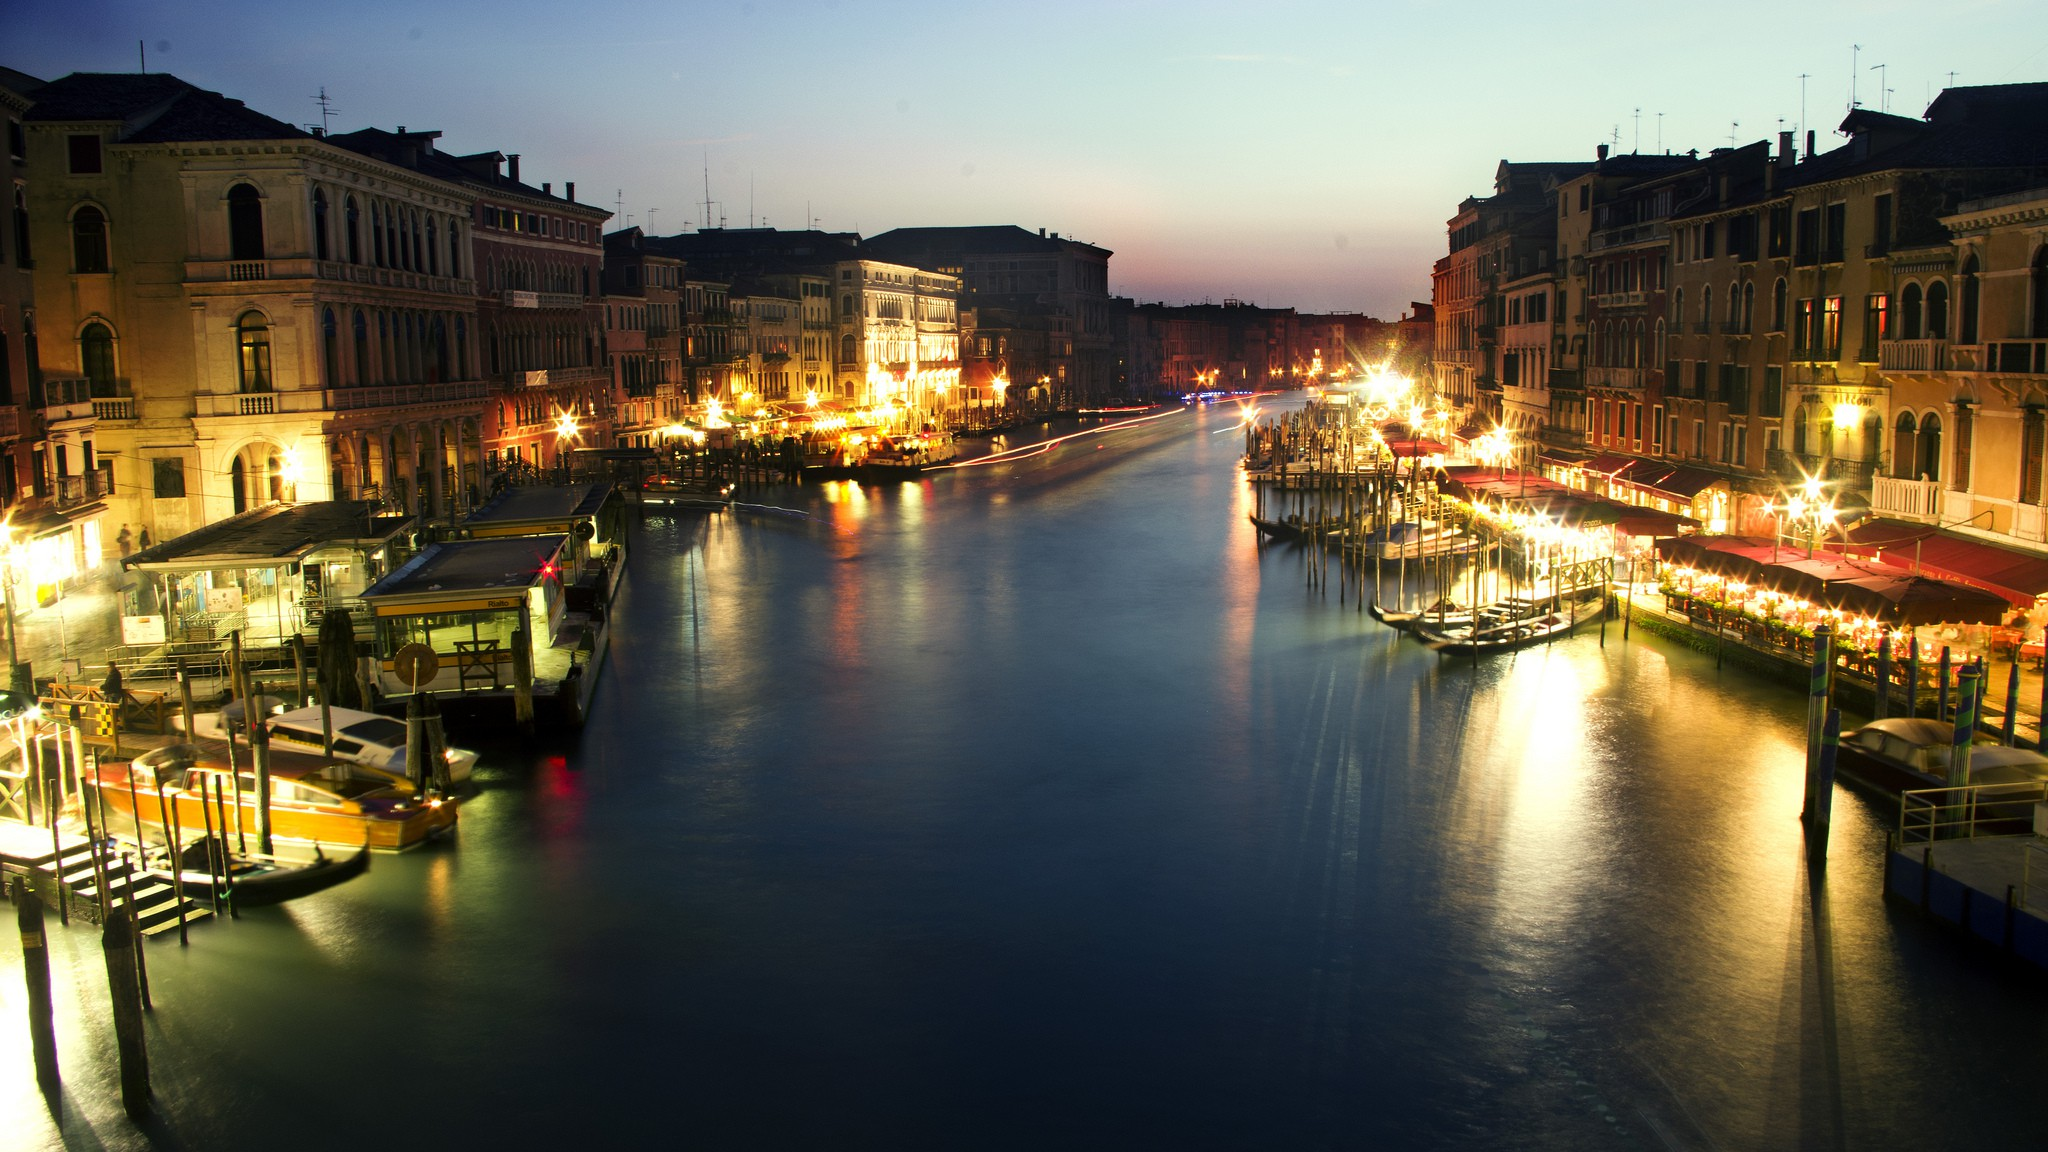 Grand canal at night © Kosala Bandara